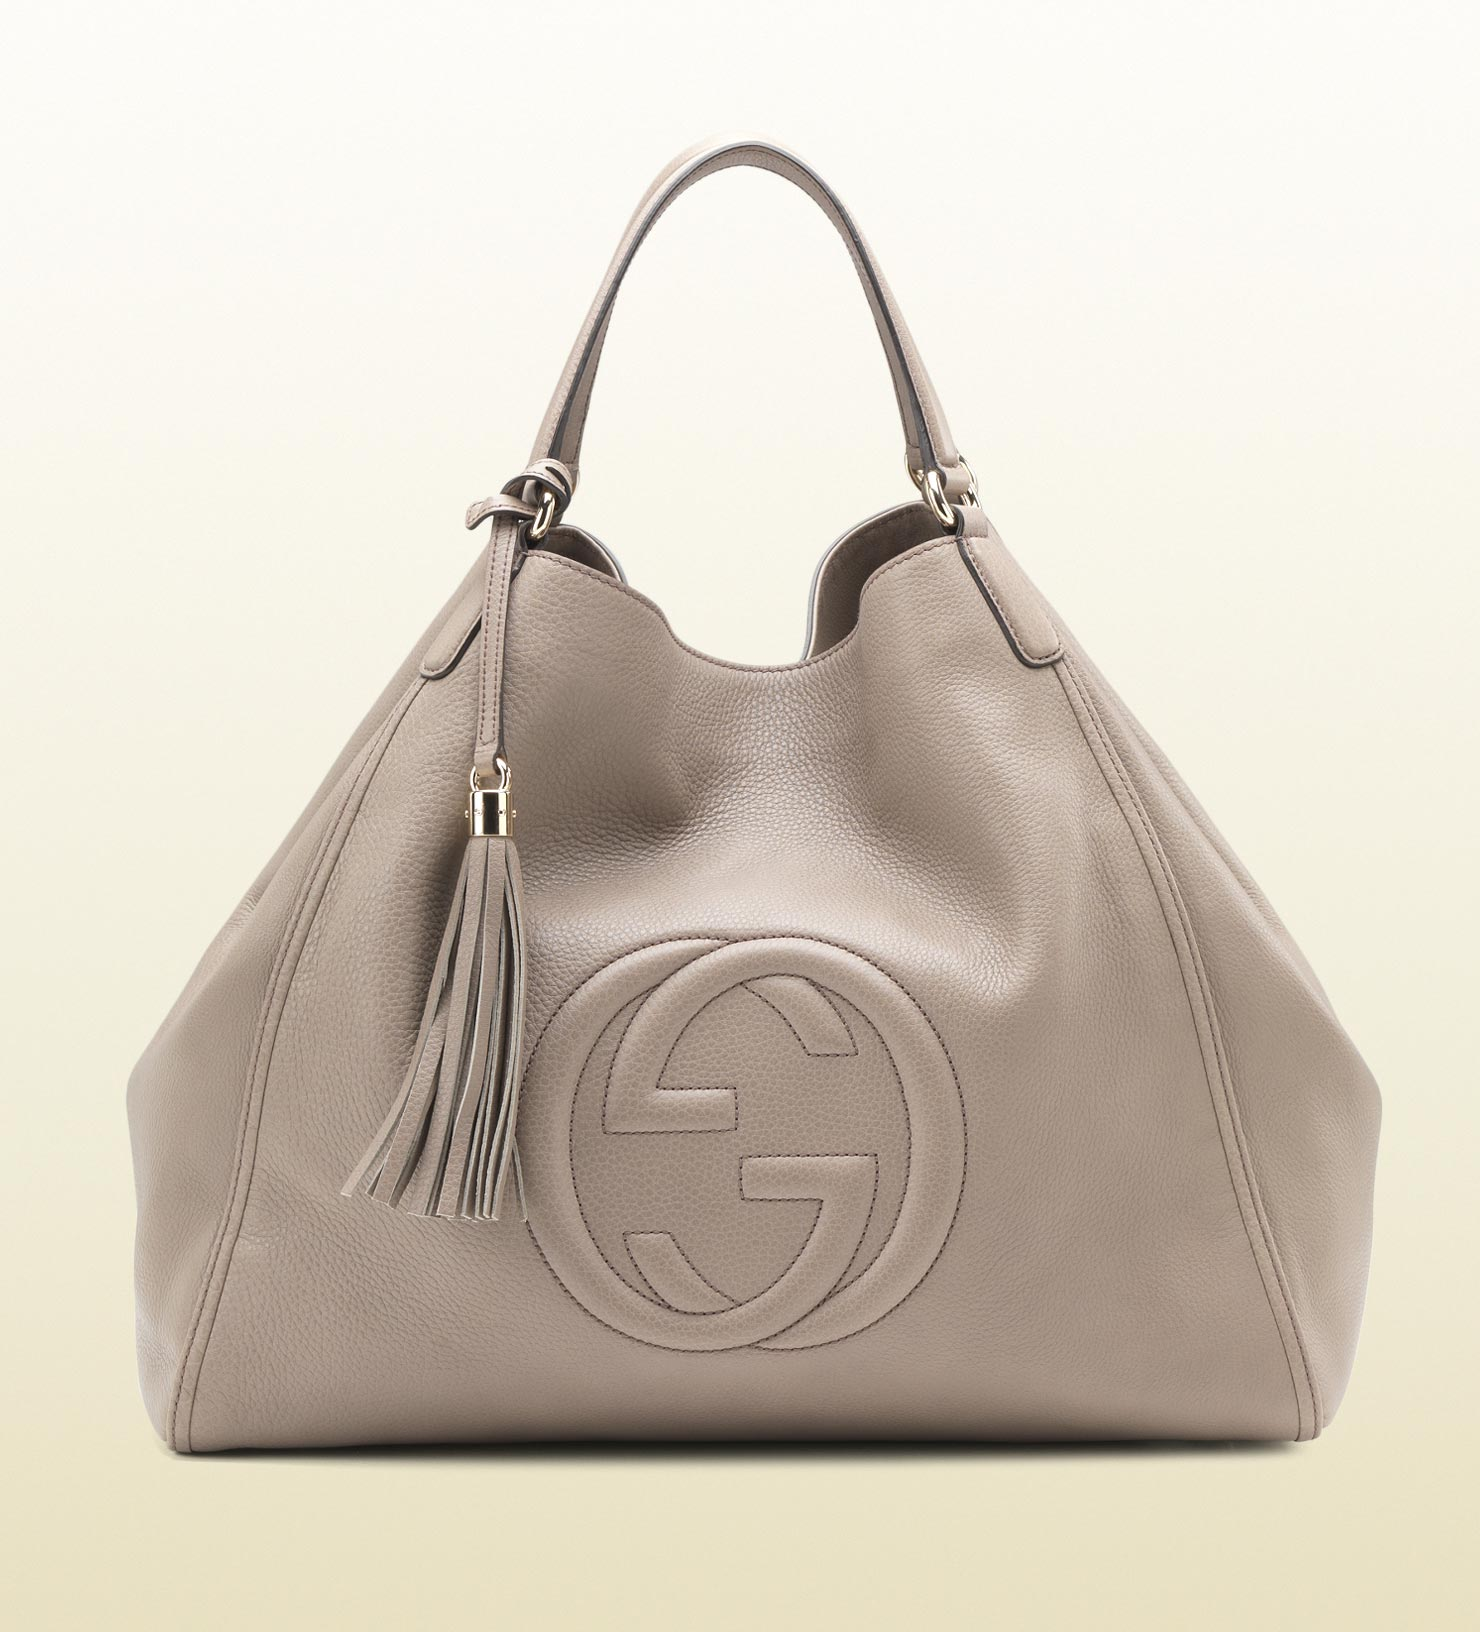 gucci soho leather shoulder bag in gray lyst. Black Bedroom Furniture Sets. Home Design Ideas